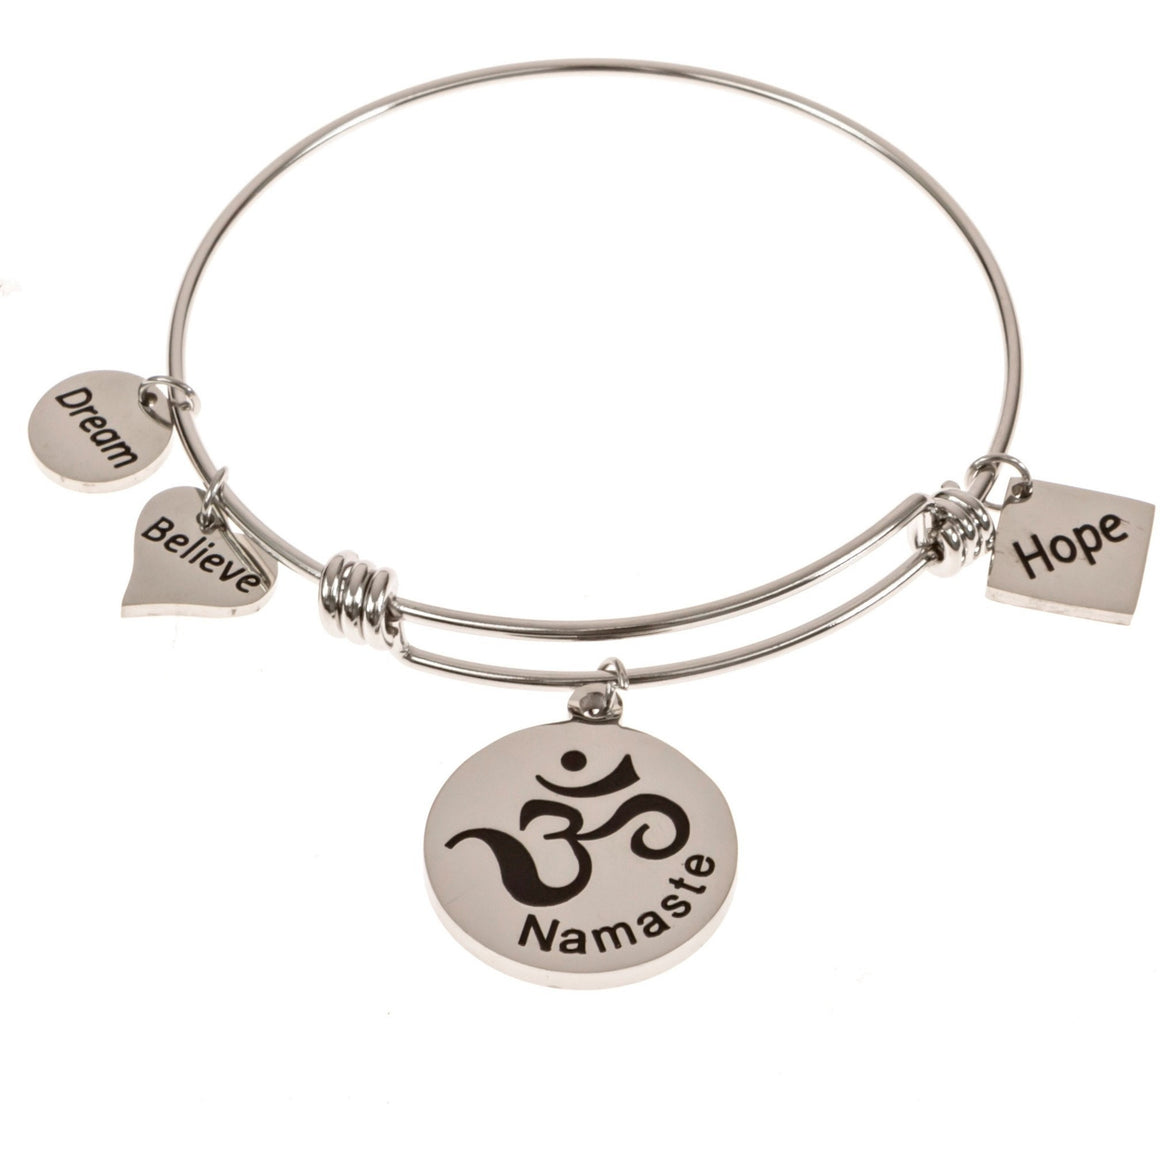 Expandable Bangle Bracelet Namaste Om - Beads and Dangles